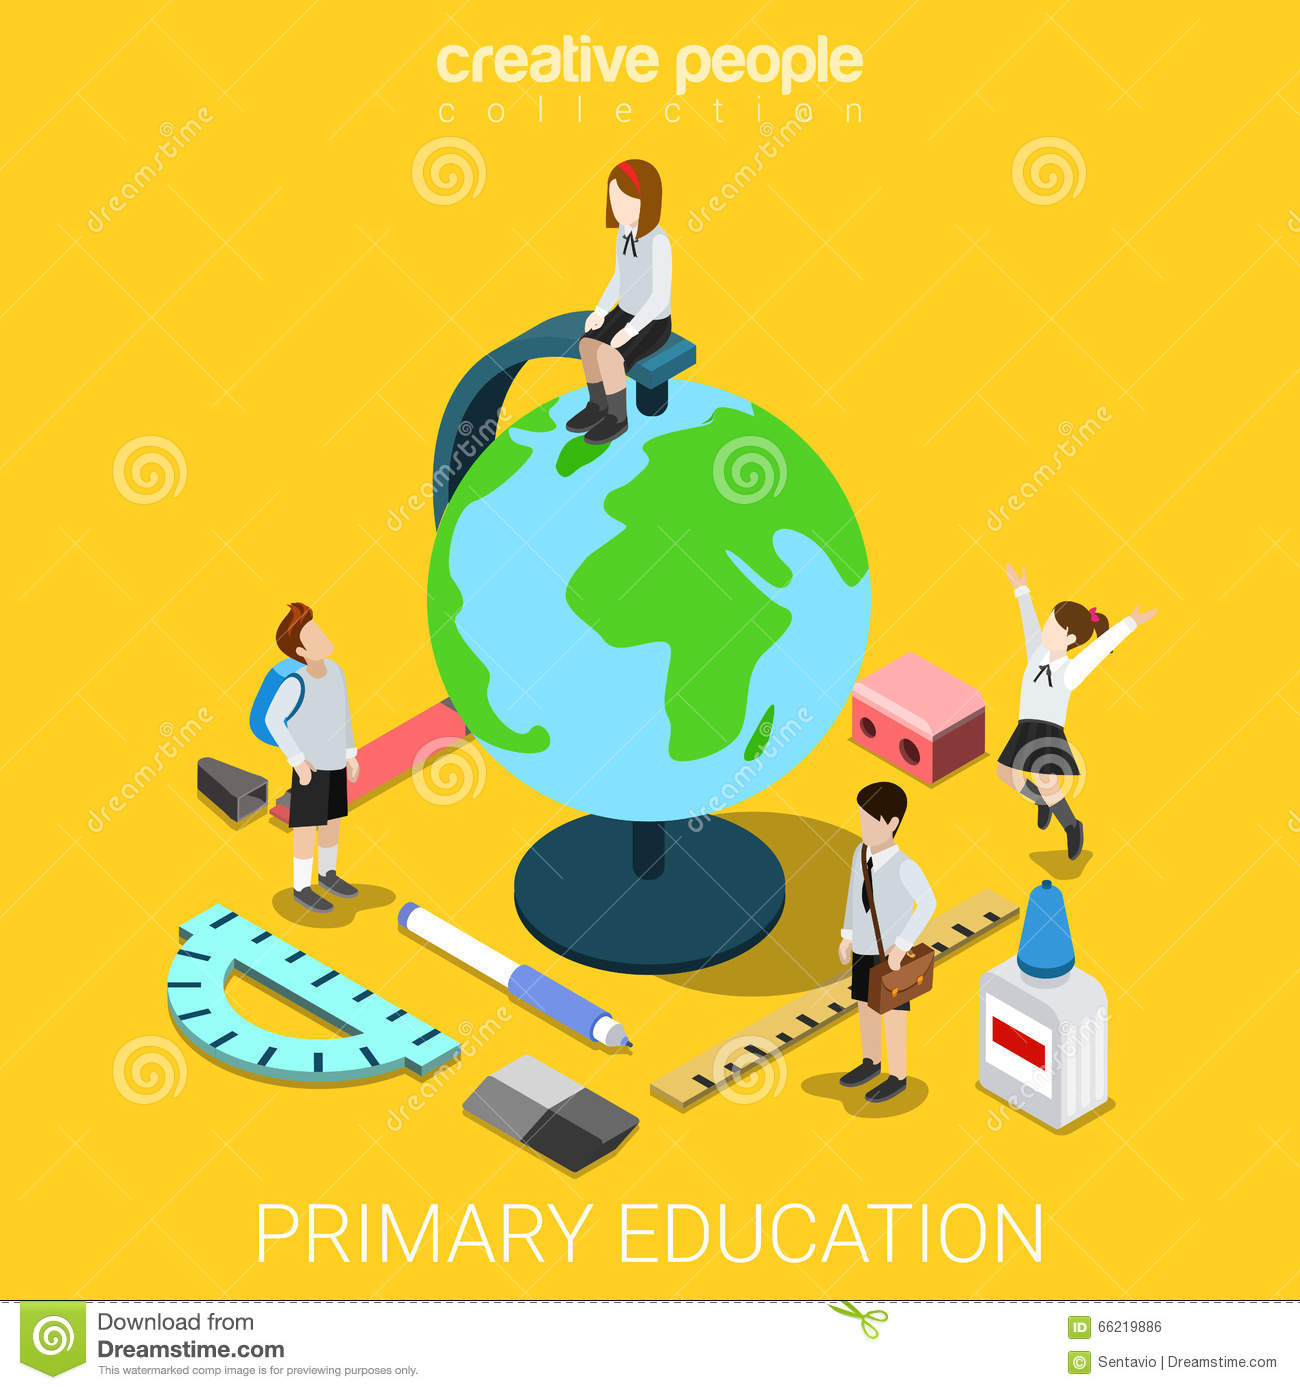 Deciding stock illustrations royalty free gograph - School Life Geography Education Globe Flat 3d Isometric Vector Royalty Free Stock Image